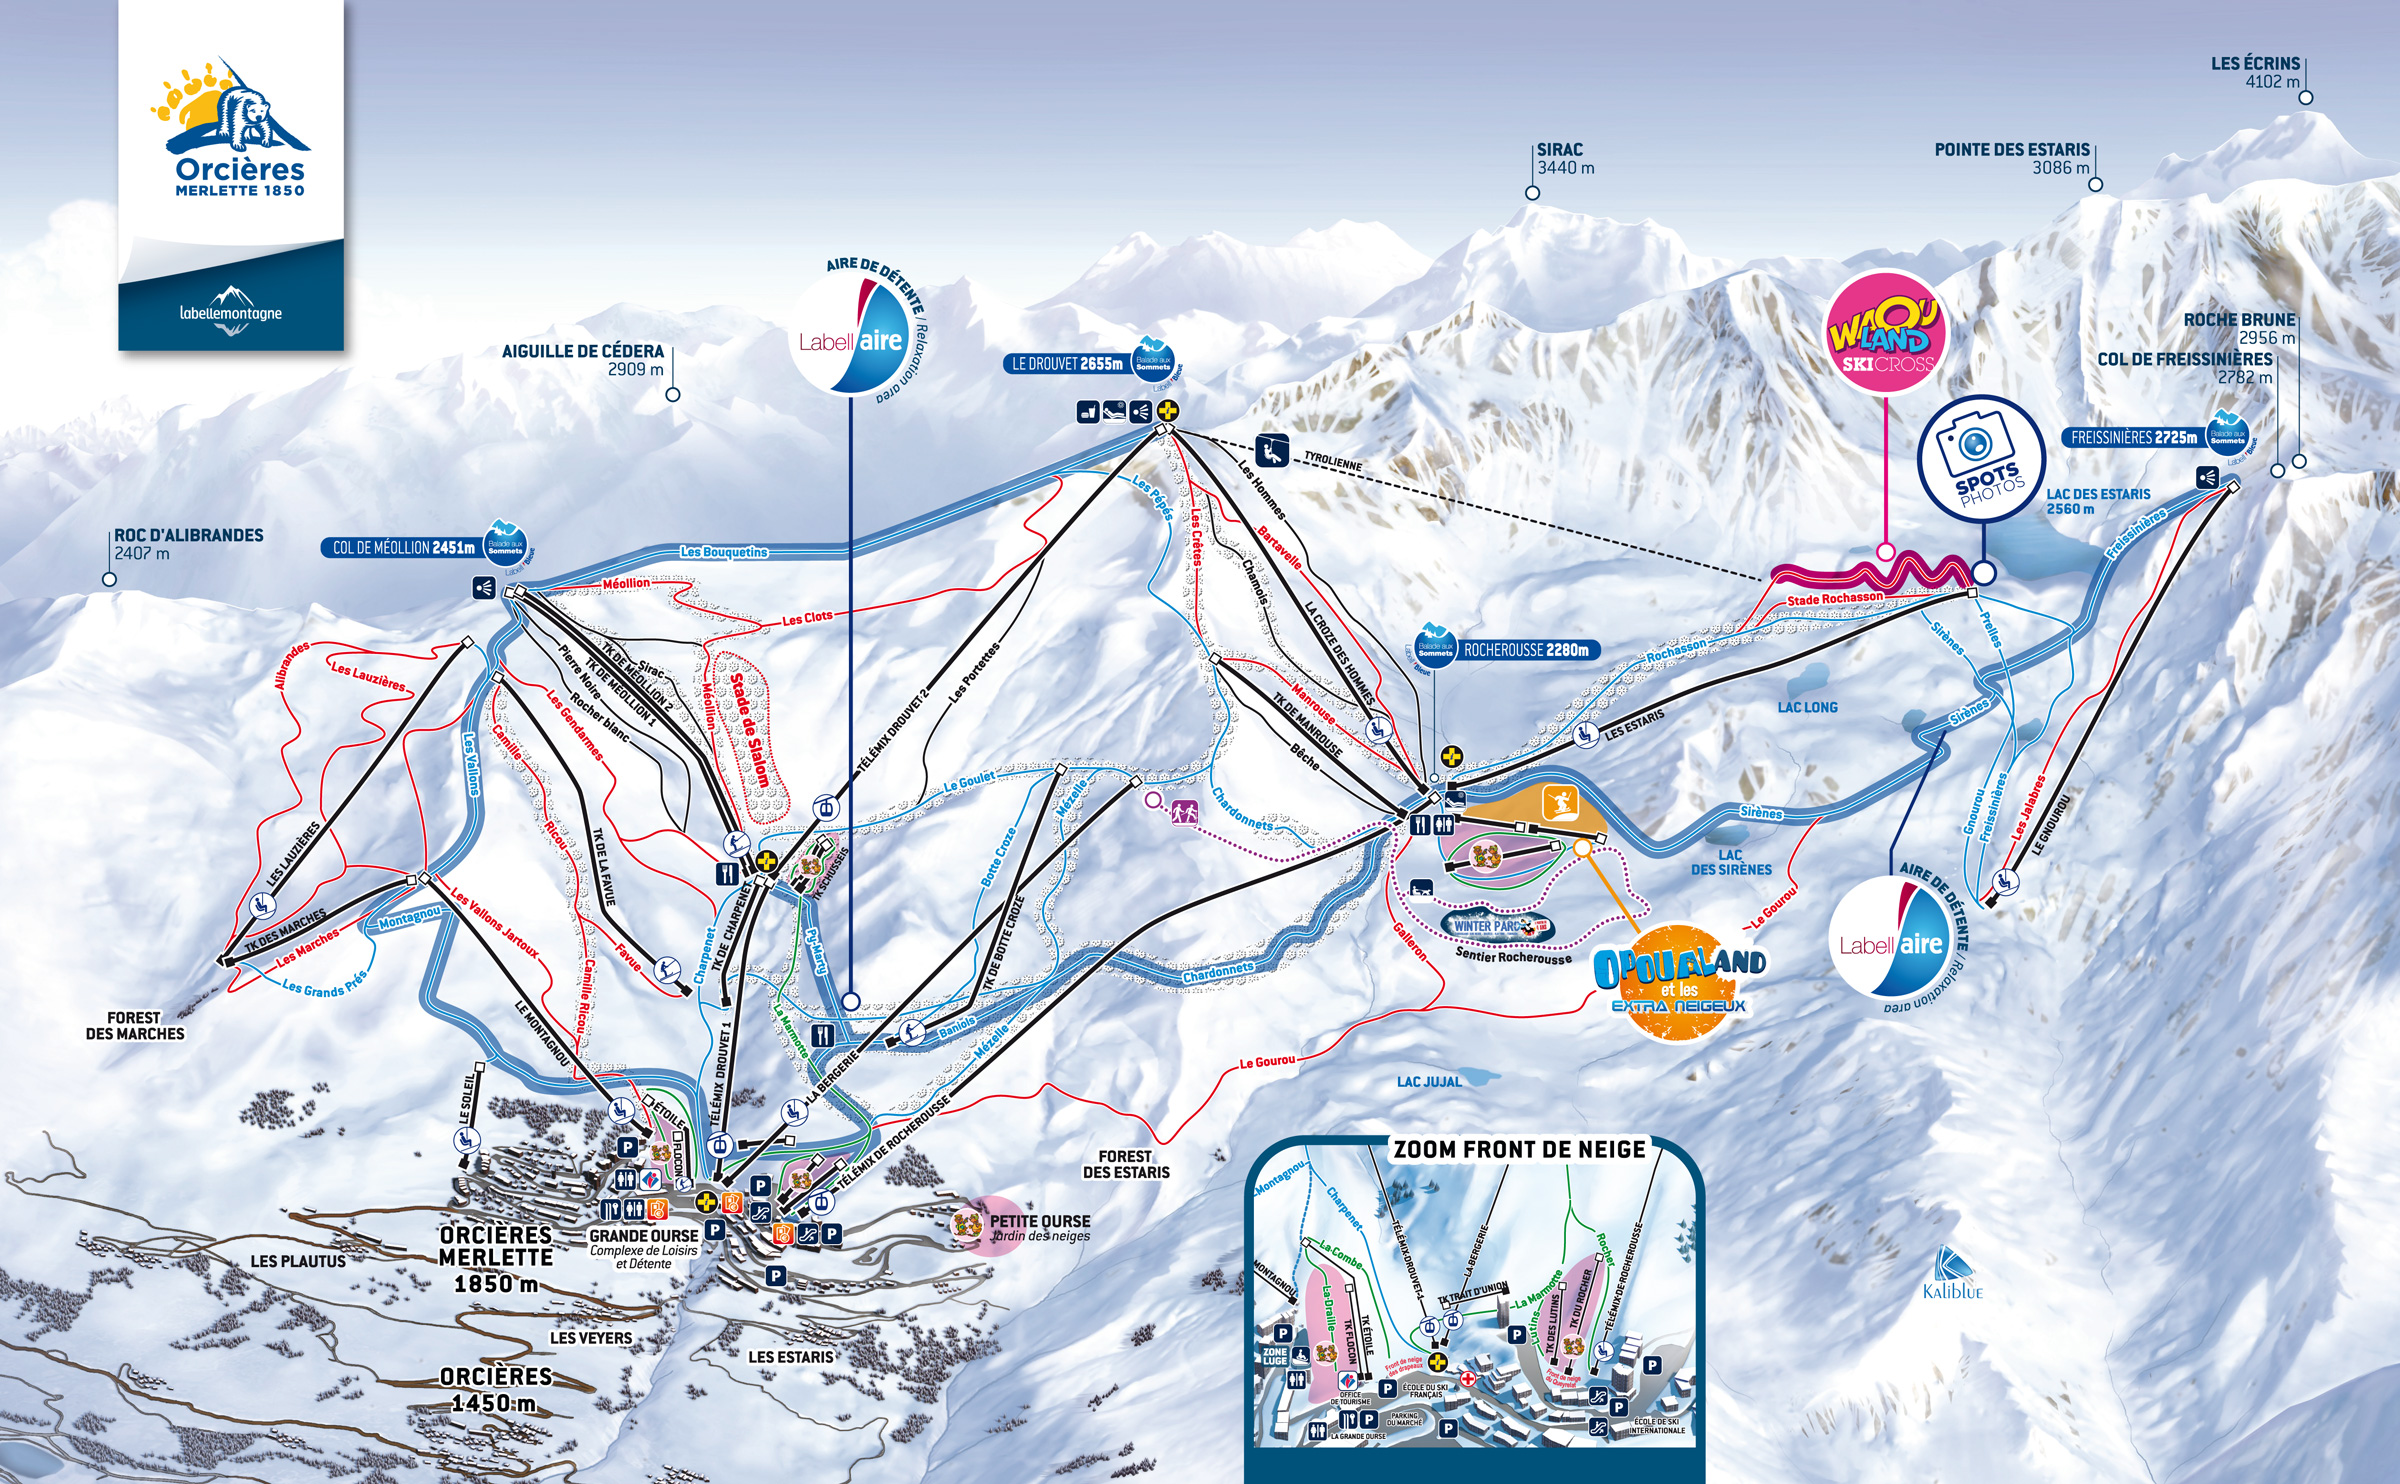 Orcieres Piste / Trail Map